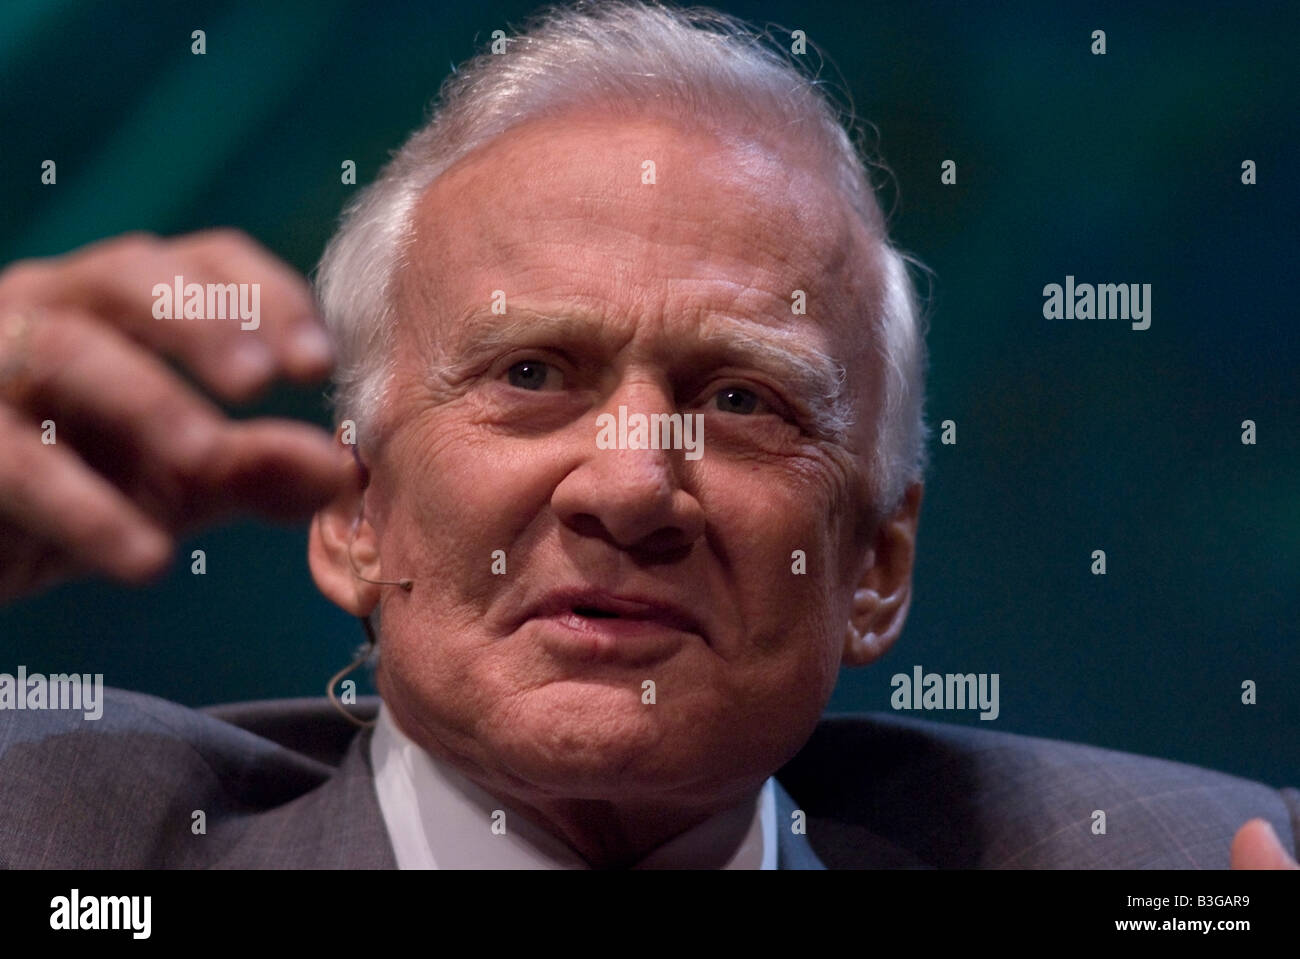 Astronaut Buzz Aldrin, who walked on the moon in 1969 during the Apollo 11 space mission, talking during a conference - Stock Image